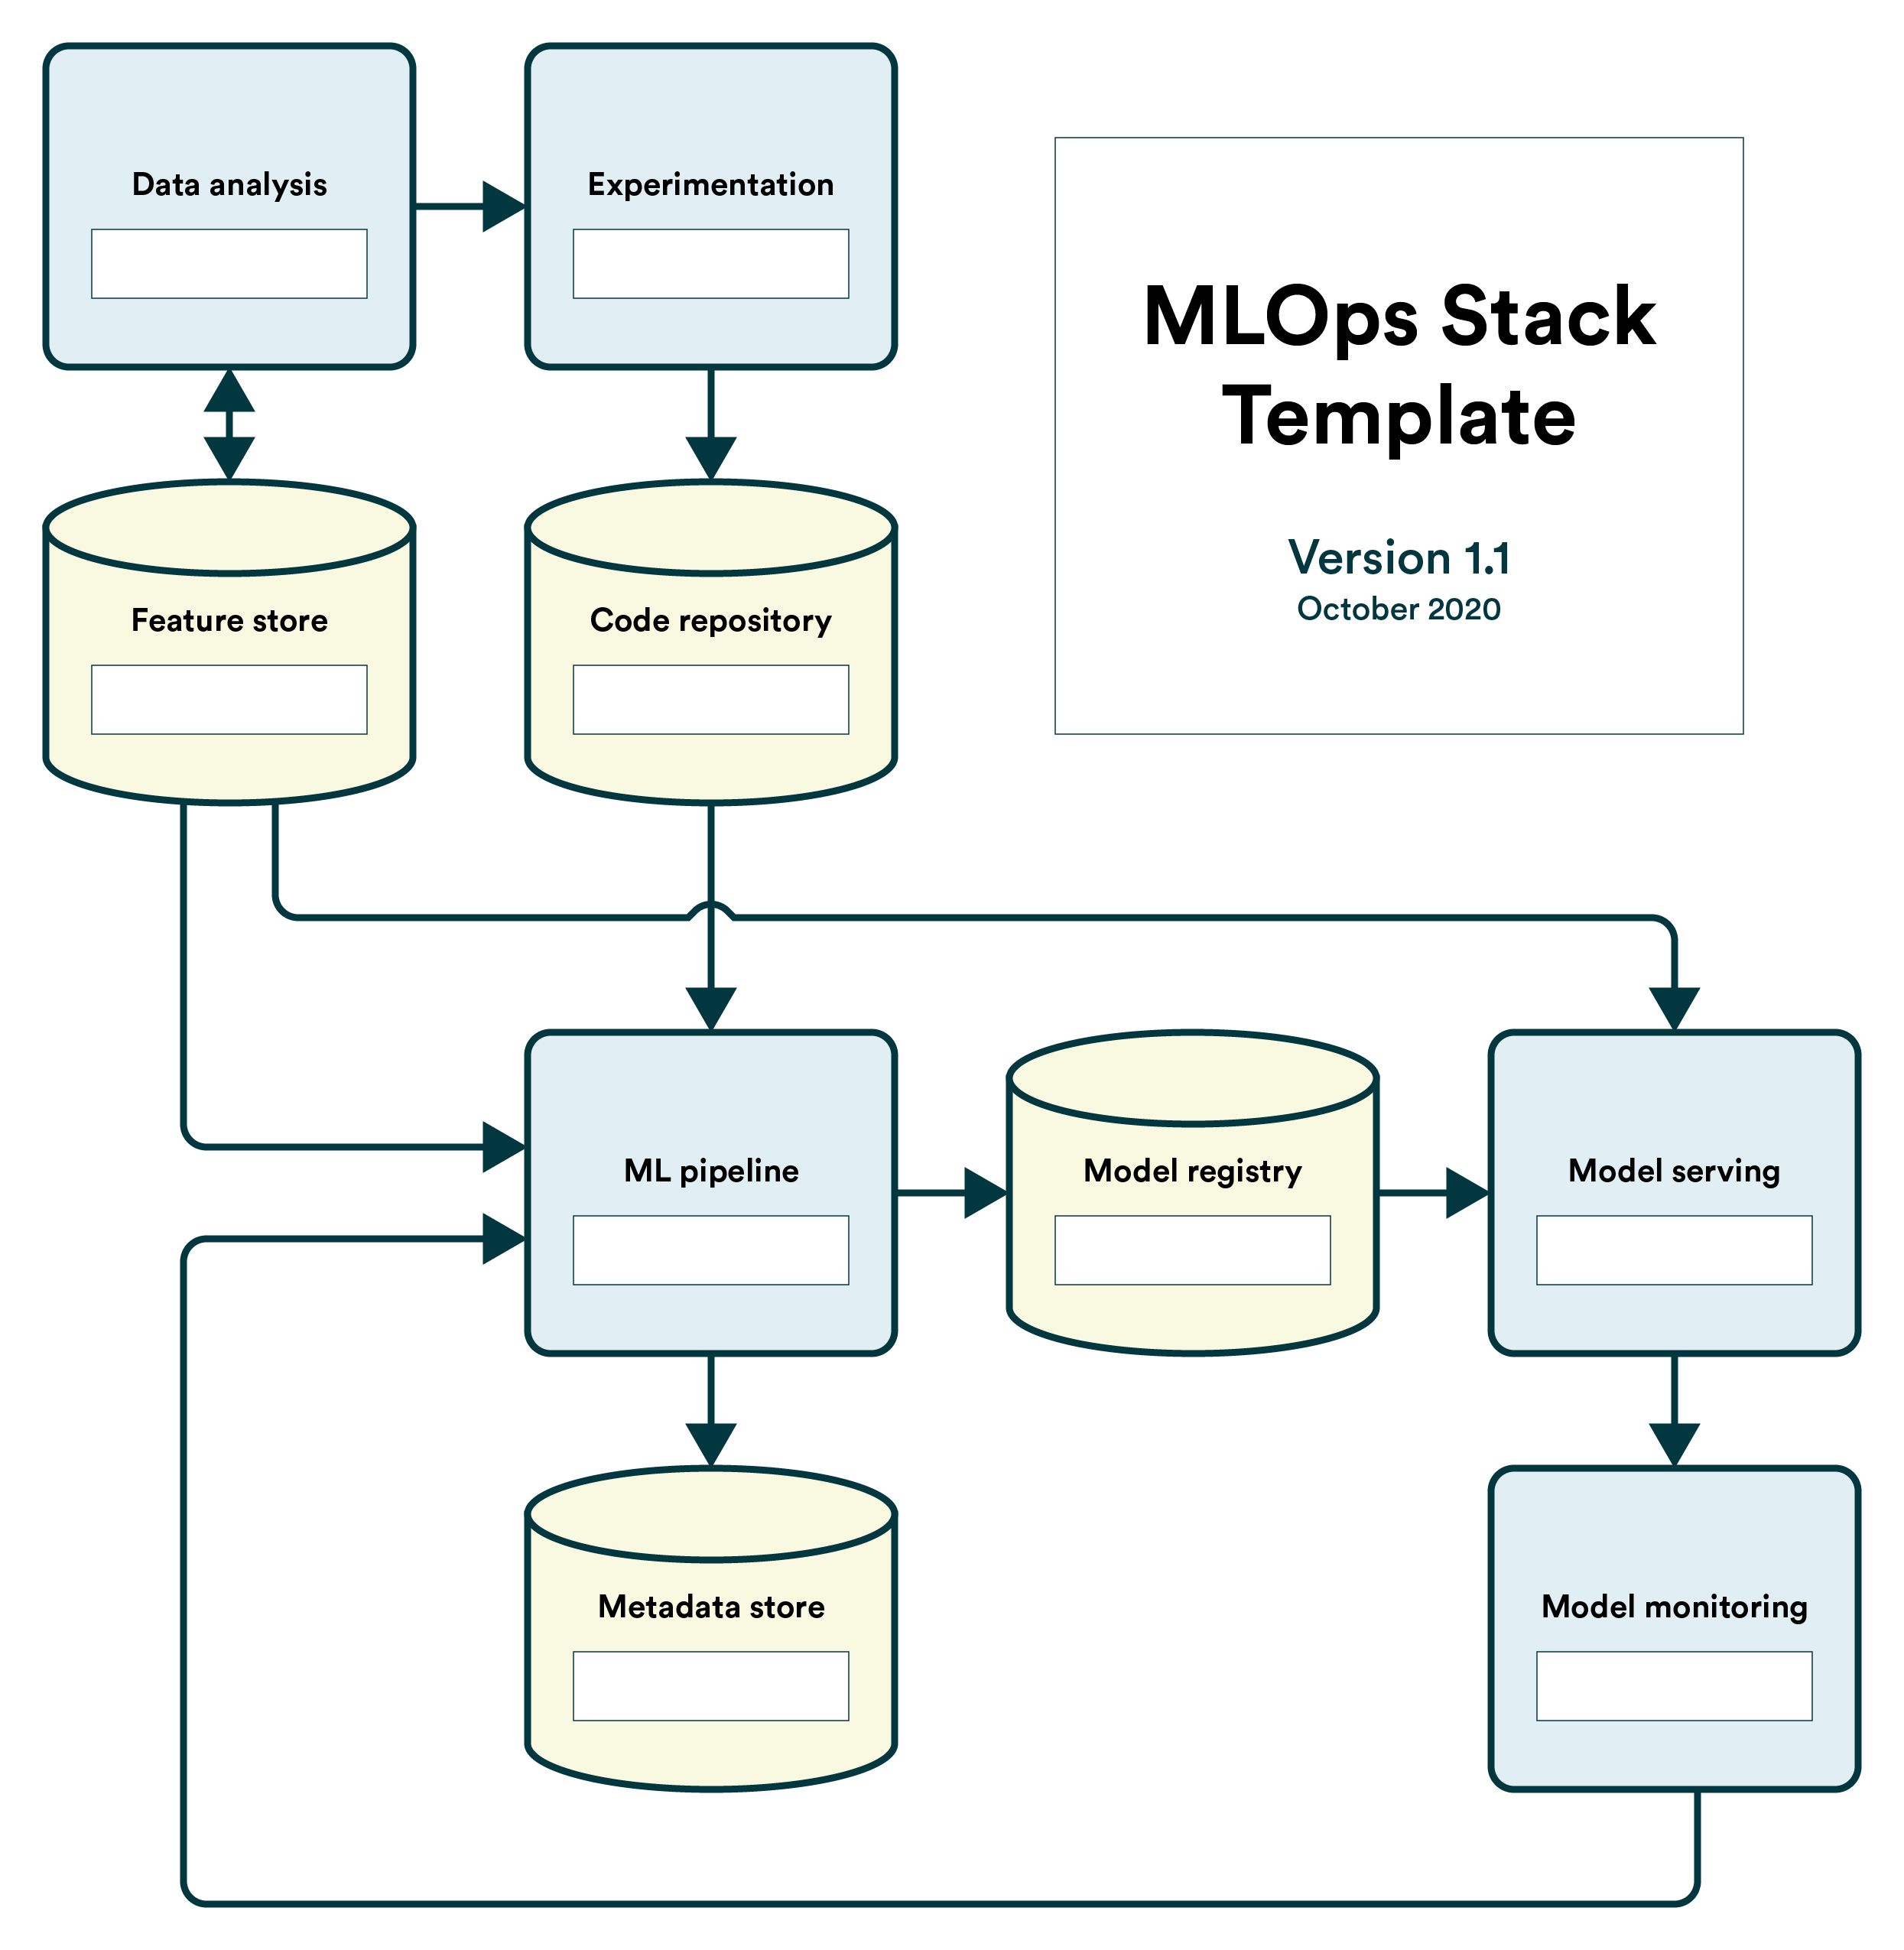 The MLOps Stack Template